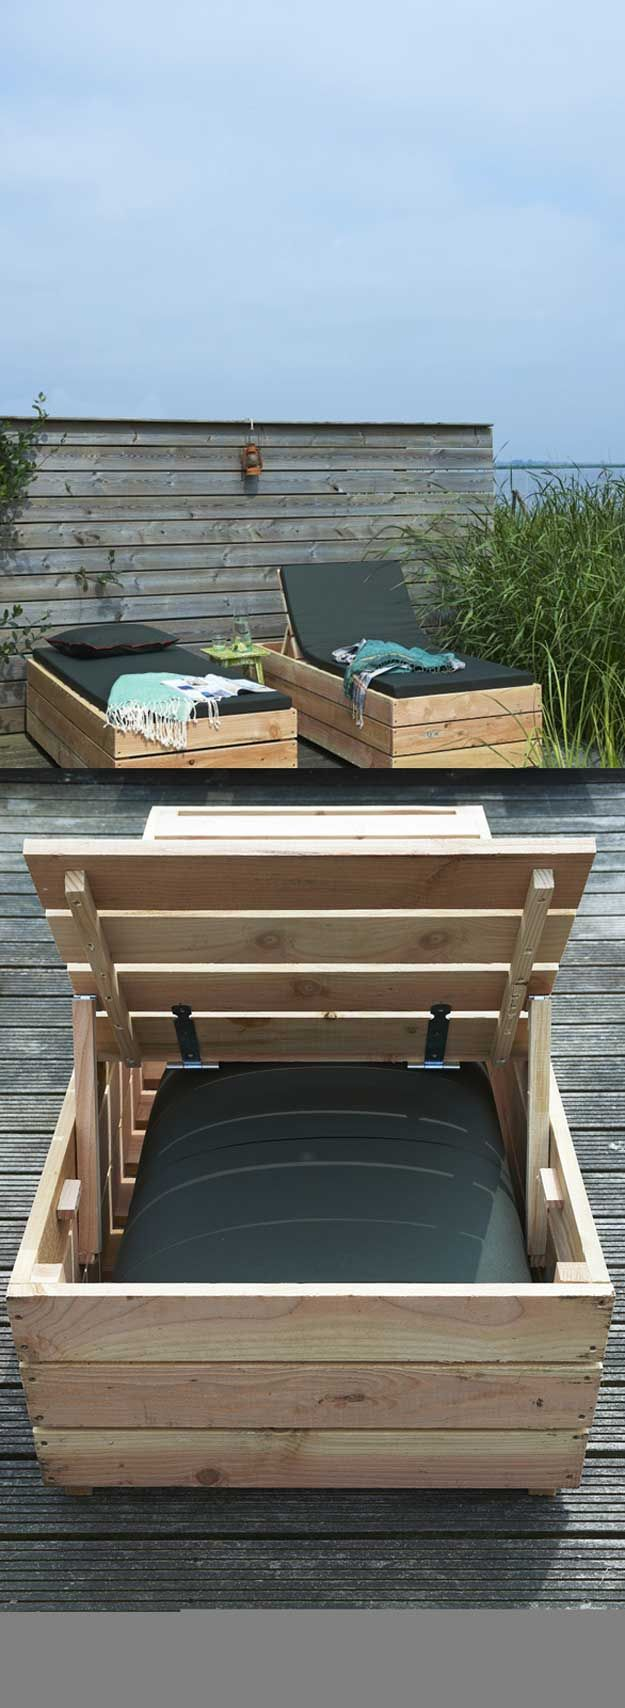 wood pallets furniture. Daybed Lounger | DIY Outdoor Pallet Furniture Projects Wood Pallets